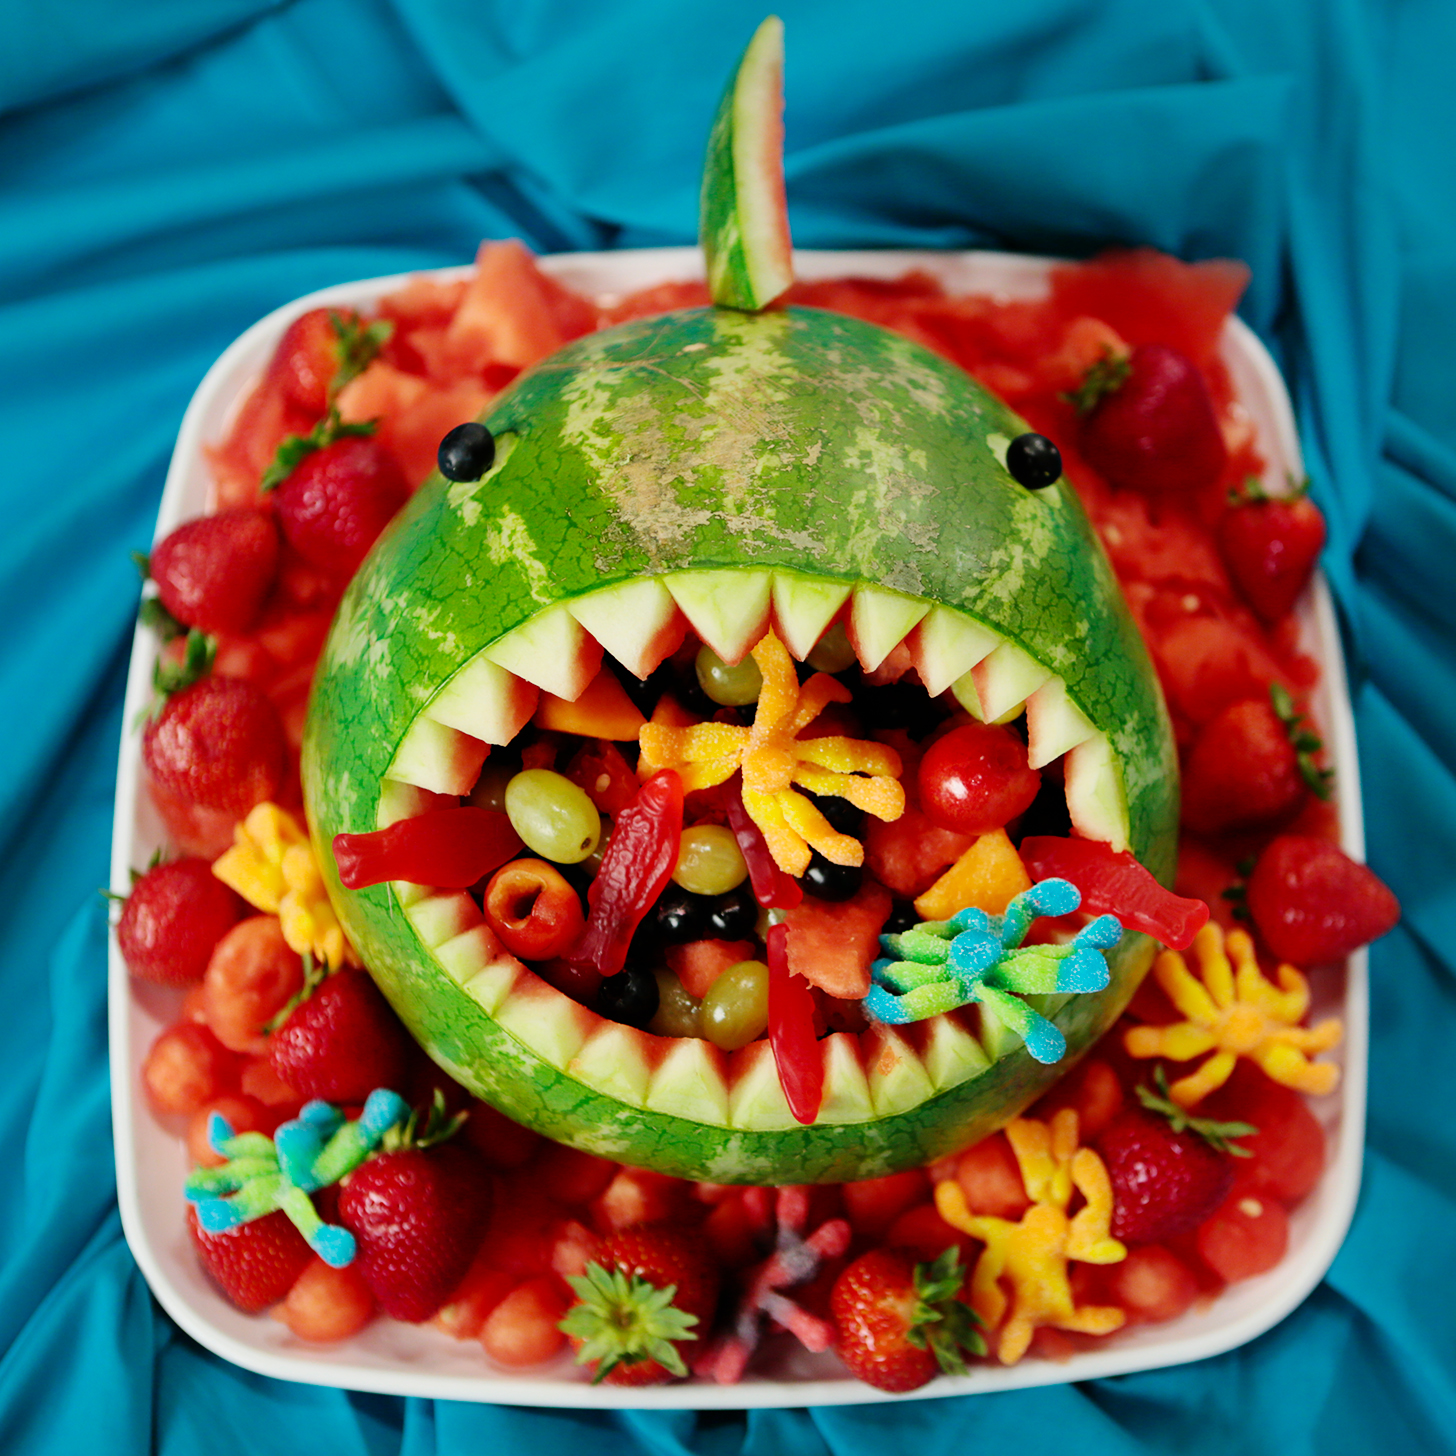 Watermelon Shark Fruit Salad Recipe | POPSUGAR Food